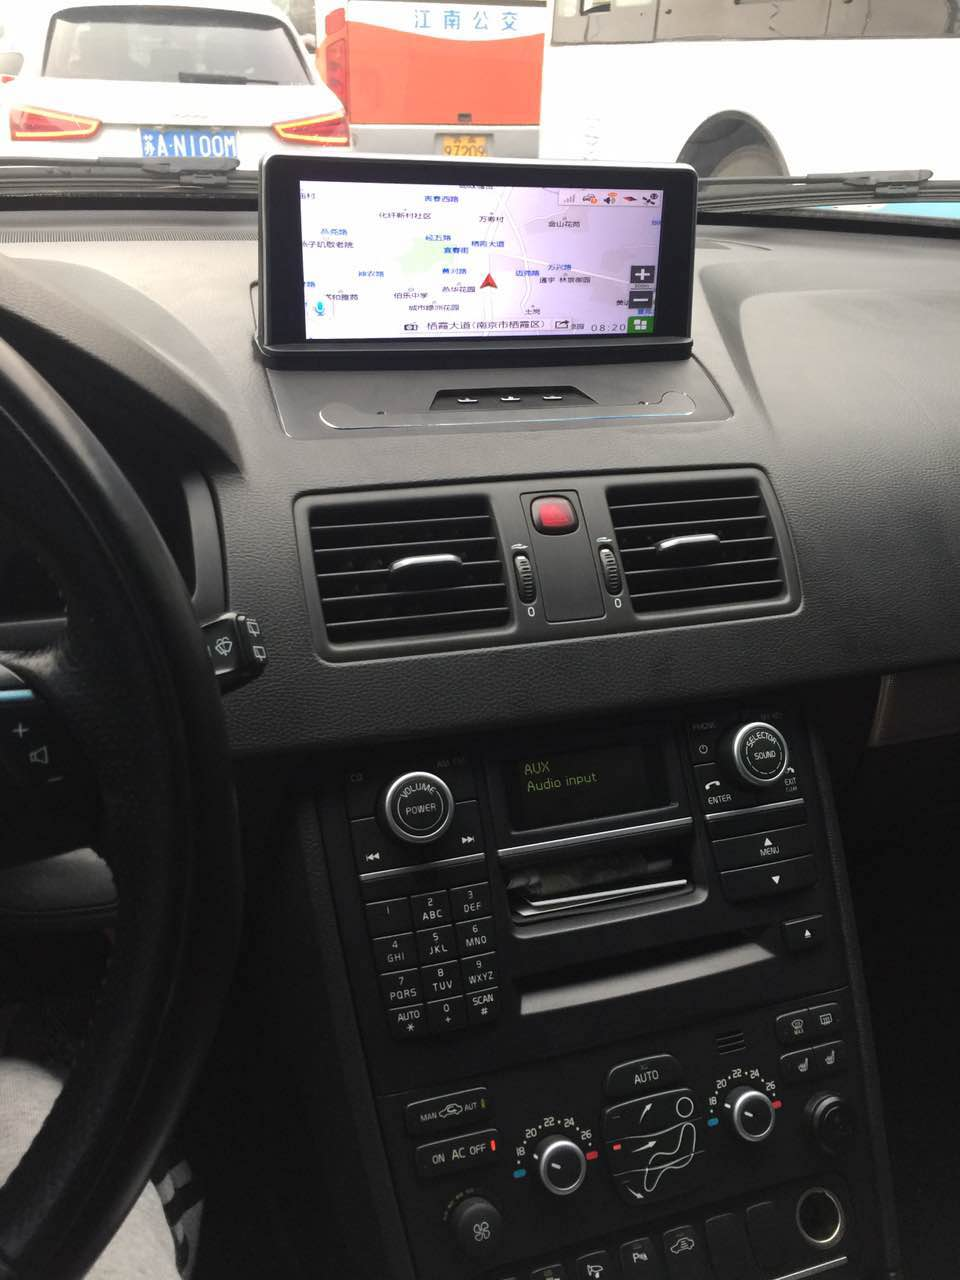 88 Inch Android 444 Car Dvd Gps Navi Audio For Volvo XC90 2004 2013 HD1024600 OBD 1GB DR 8GB